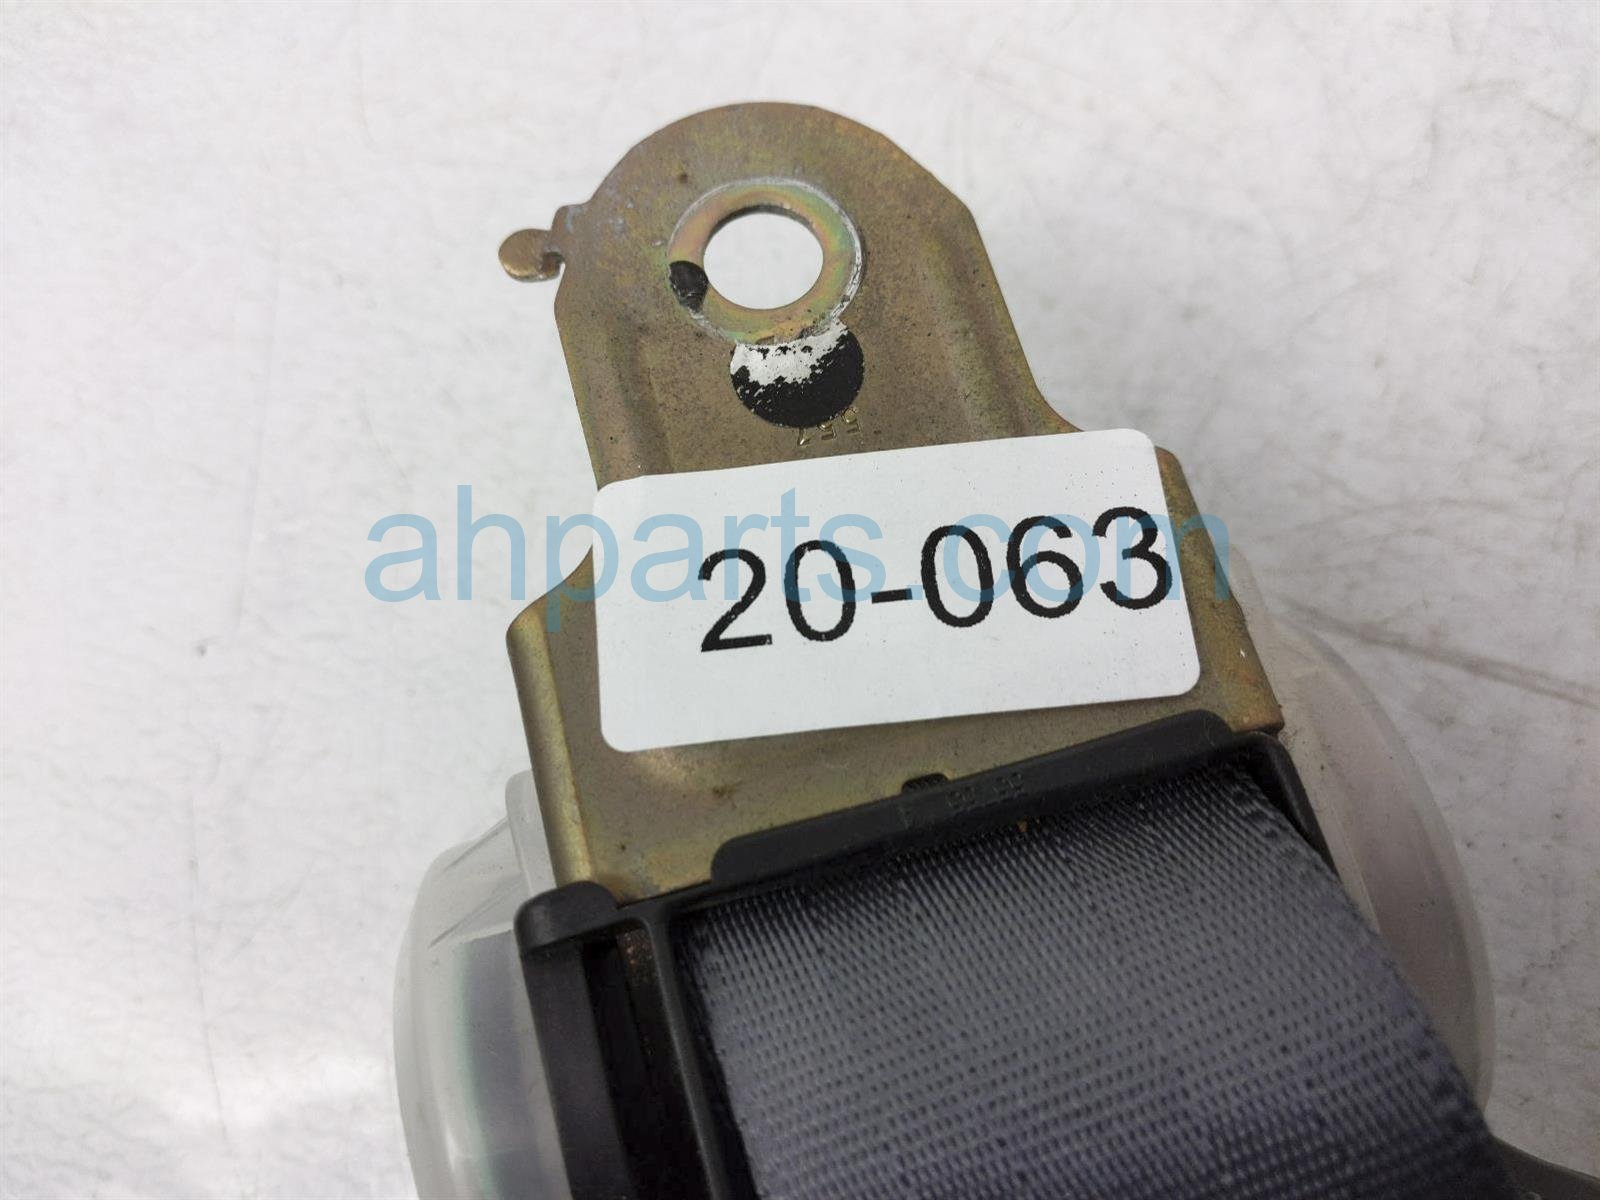 2001 Toyota Camry Rear 2nd Row Driver Seat Belt   Grey 73370 AA040 B0 Replacement